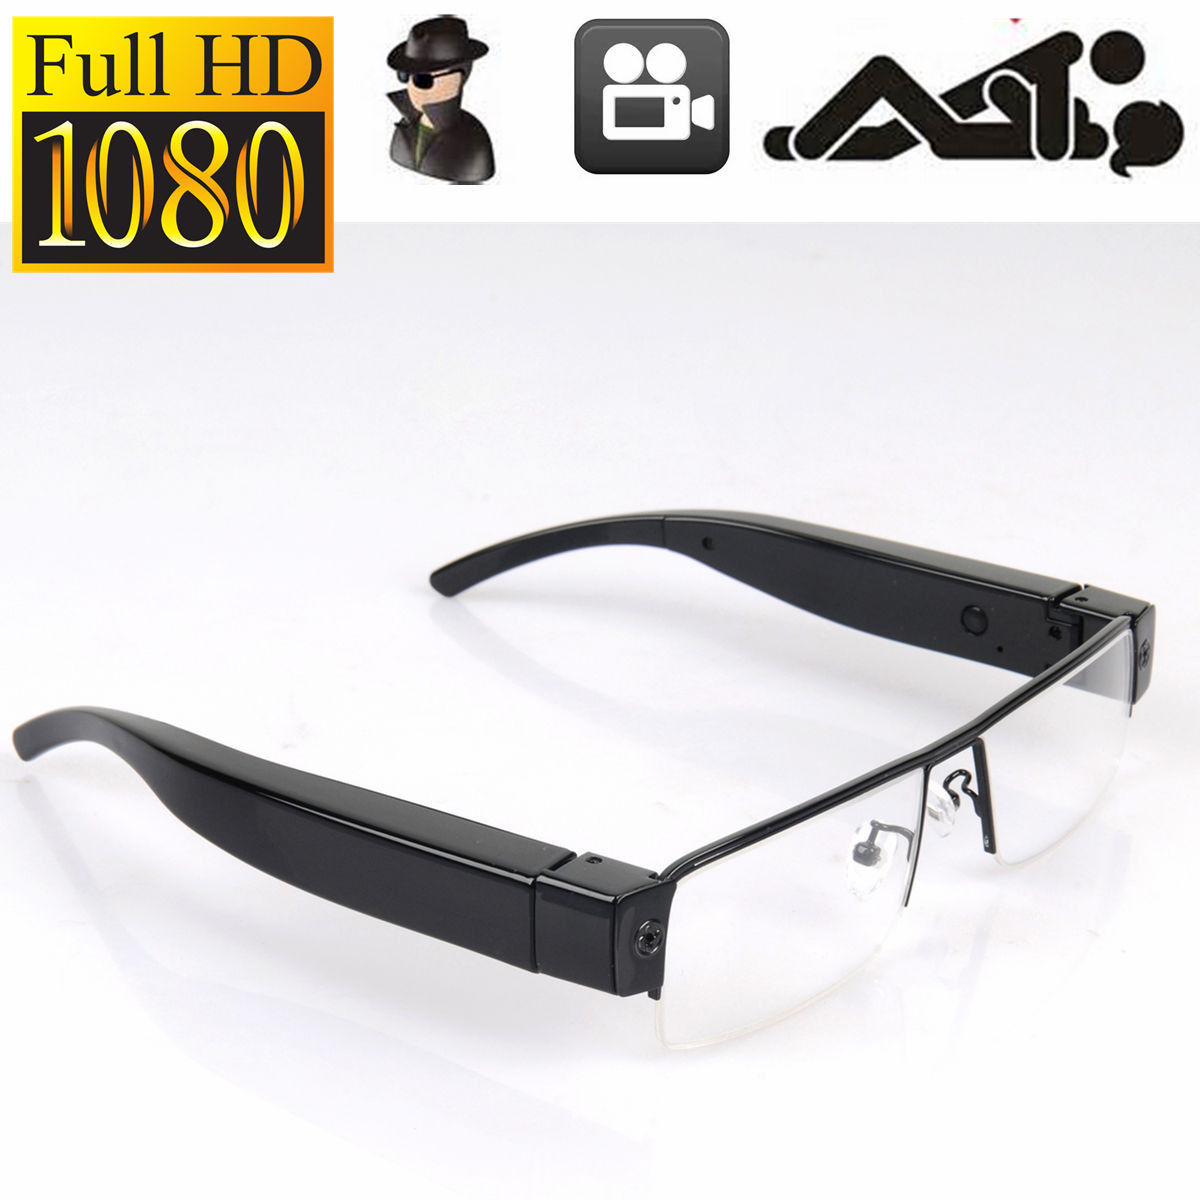 ee432318d7 Spy Glasses Full HD 1080P Spy Hidden Camera Security Eyewear Cam DVR Video  Recorder Mini Eyeware Sunglasses Camera